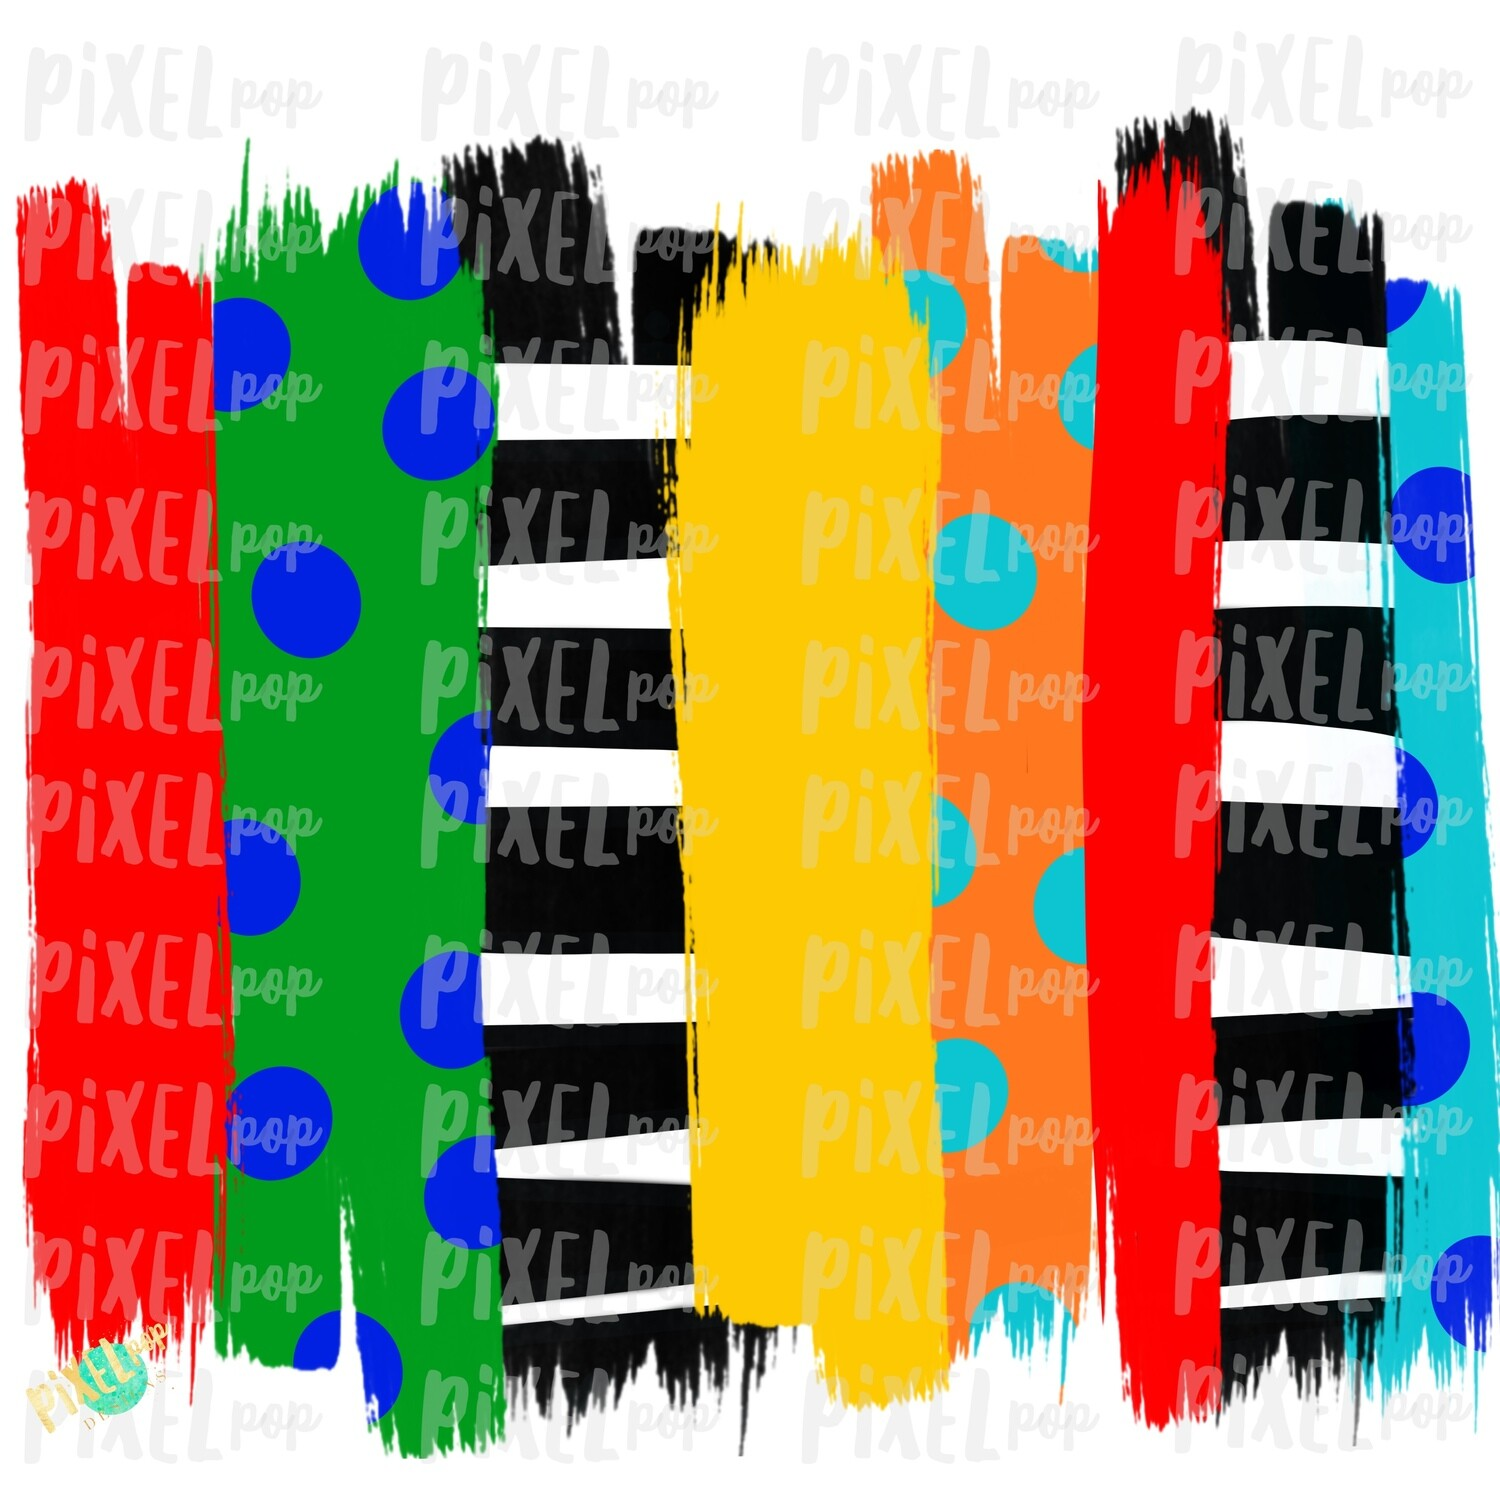 Primary Colors Brush Stroke Background Sublimation PNG   Reading PNG   Art   Oh the Places   Hand Painted   Digital Background   Printable